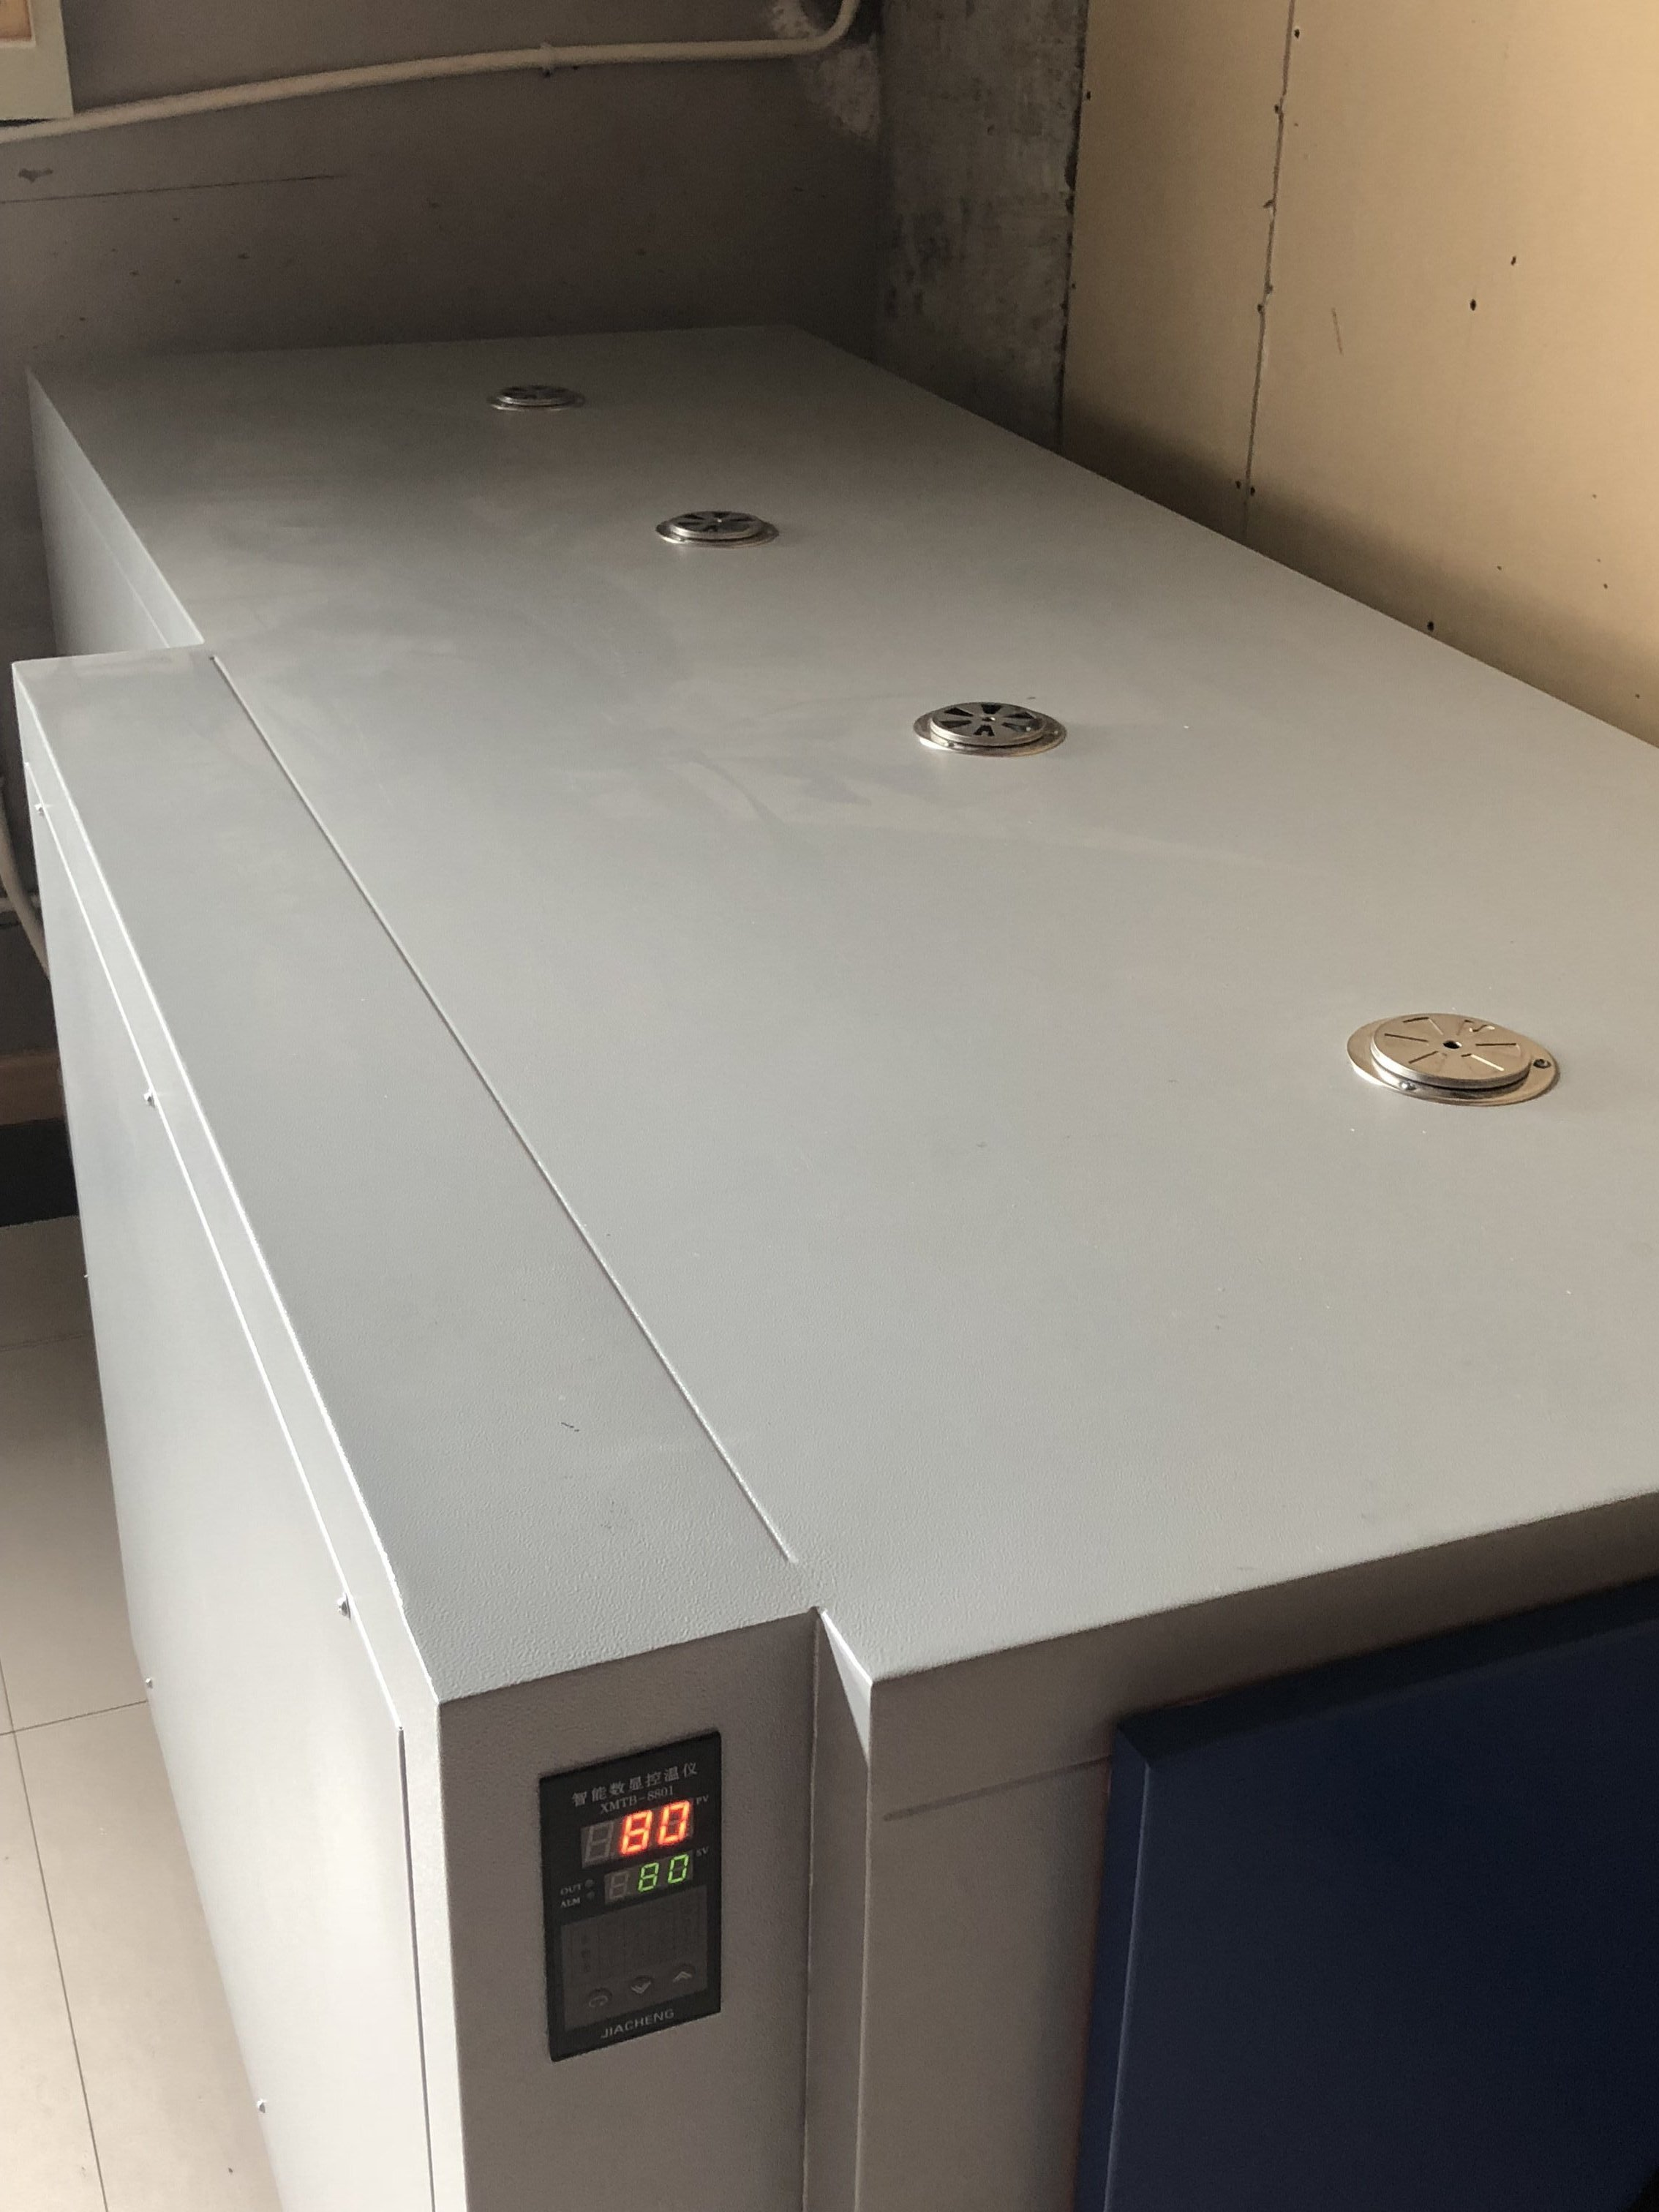 Oven for Drying the Board